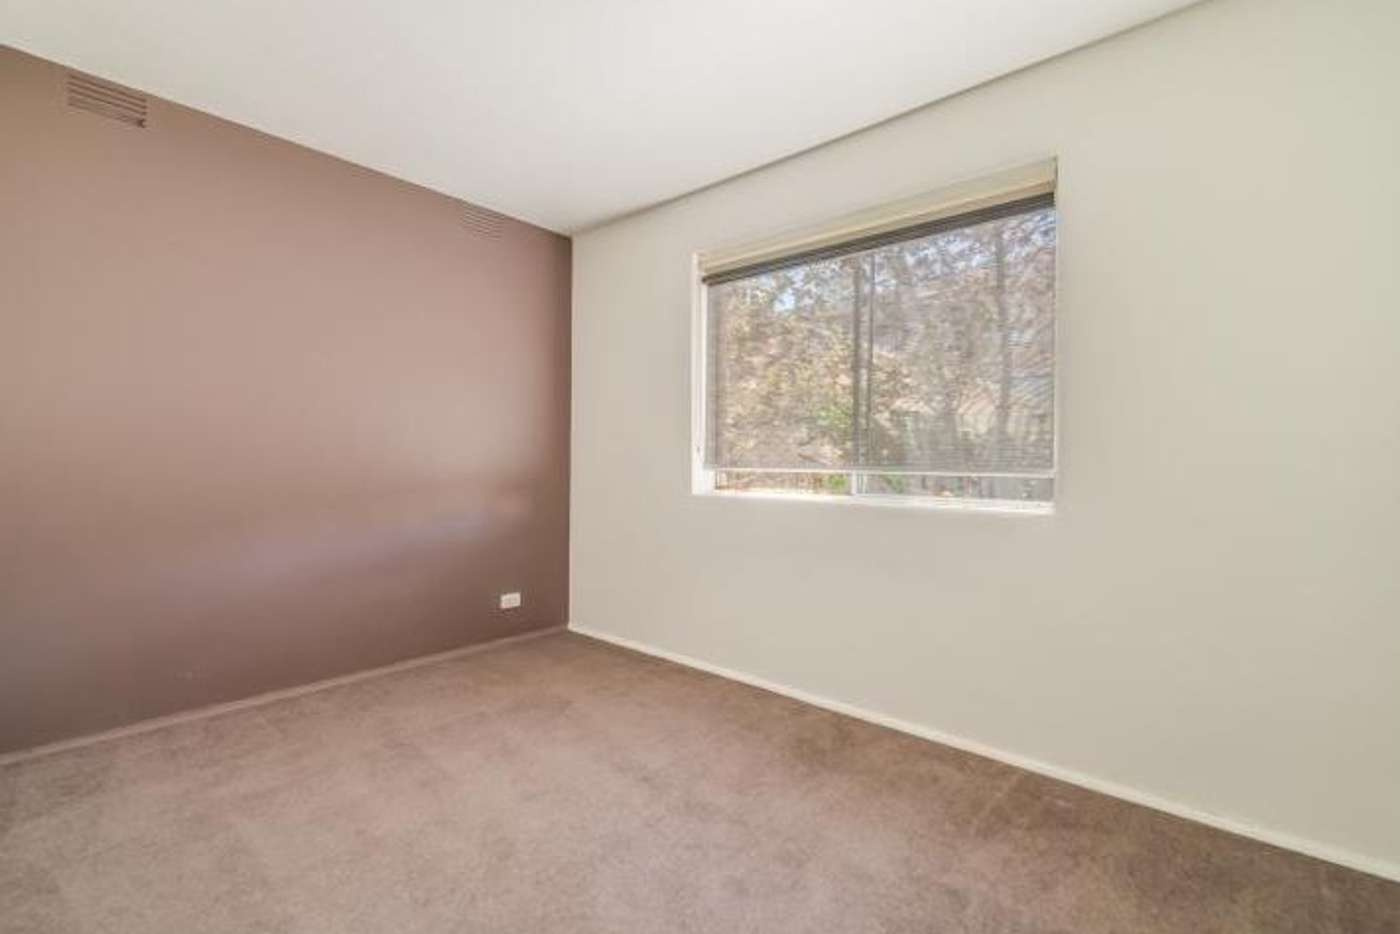 Sixth view of Homely unit listing, 1/56A Severn Street, Box Hill North VIC 3129